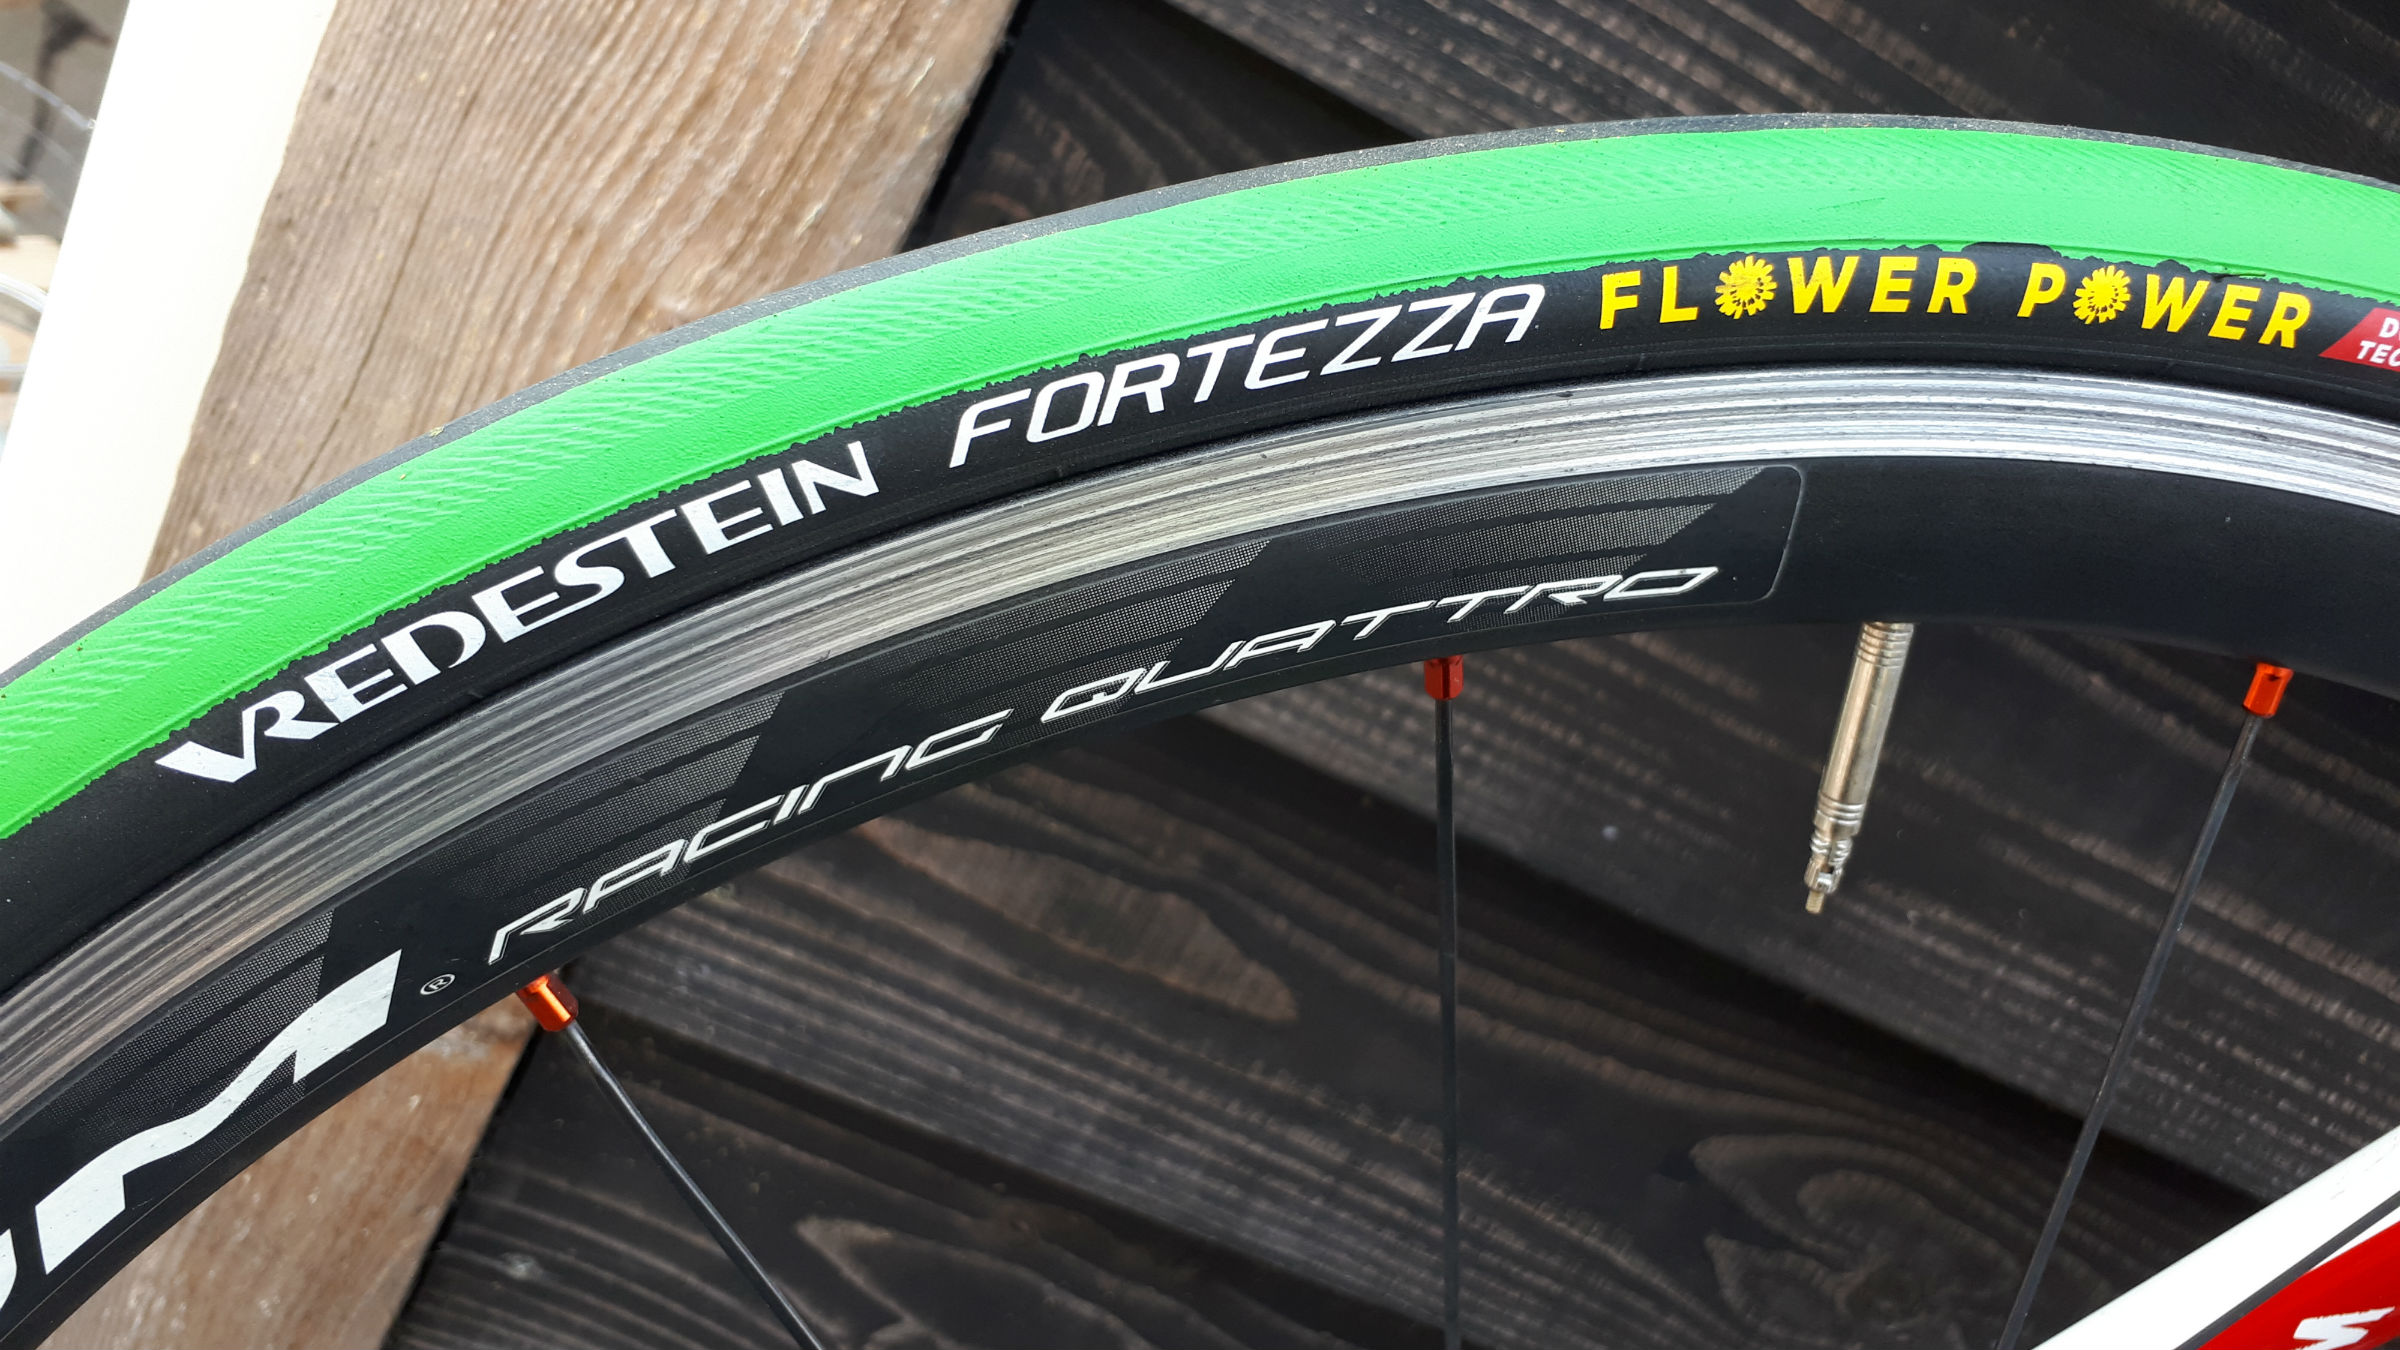 Fortezza Flower Power prototype bicycle tire produced by Vredestein (Apollo Tyres) from rubber extracted using GEA milling and decanter technology. The tires are showing promising performance in tests, for example in grip, compared to traditional compounds.